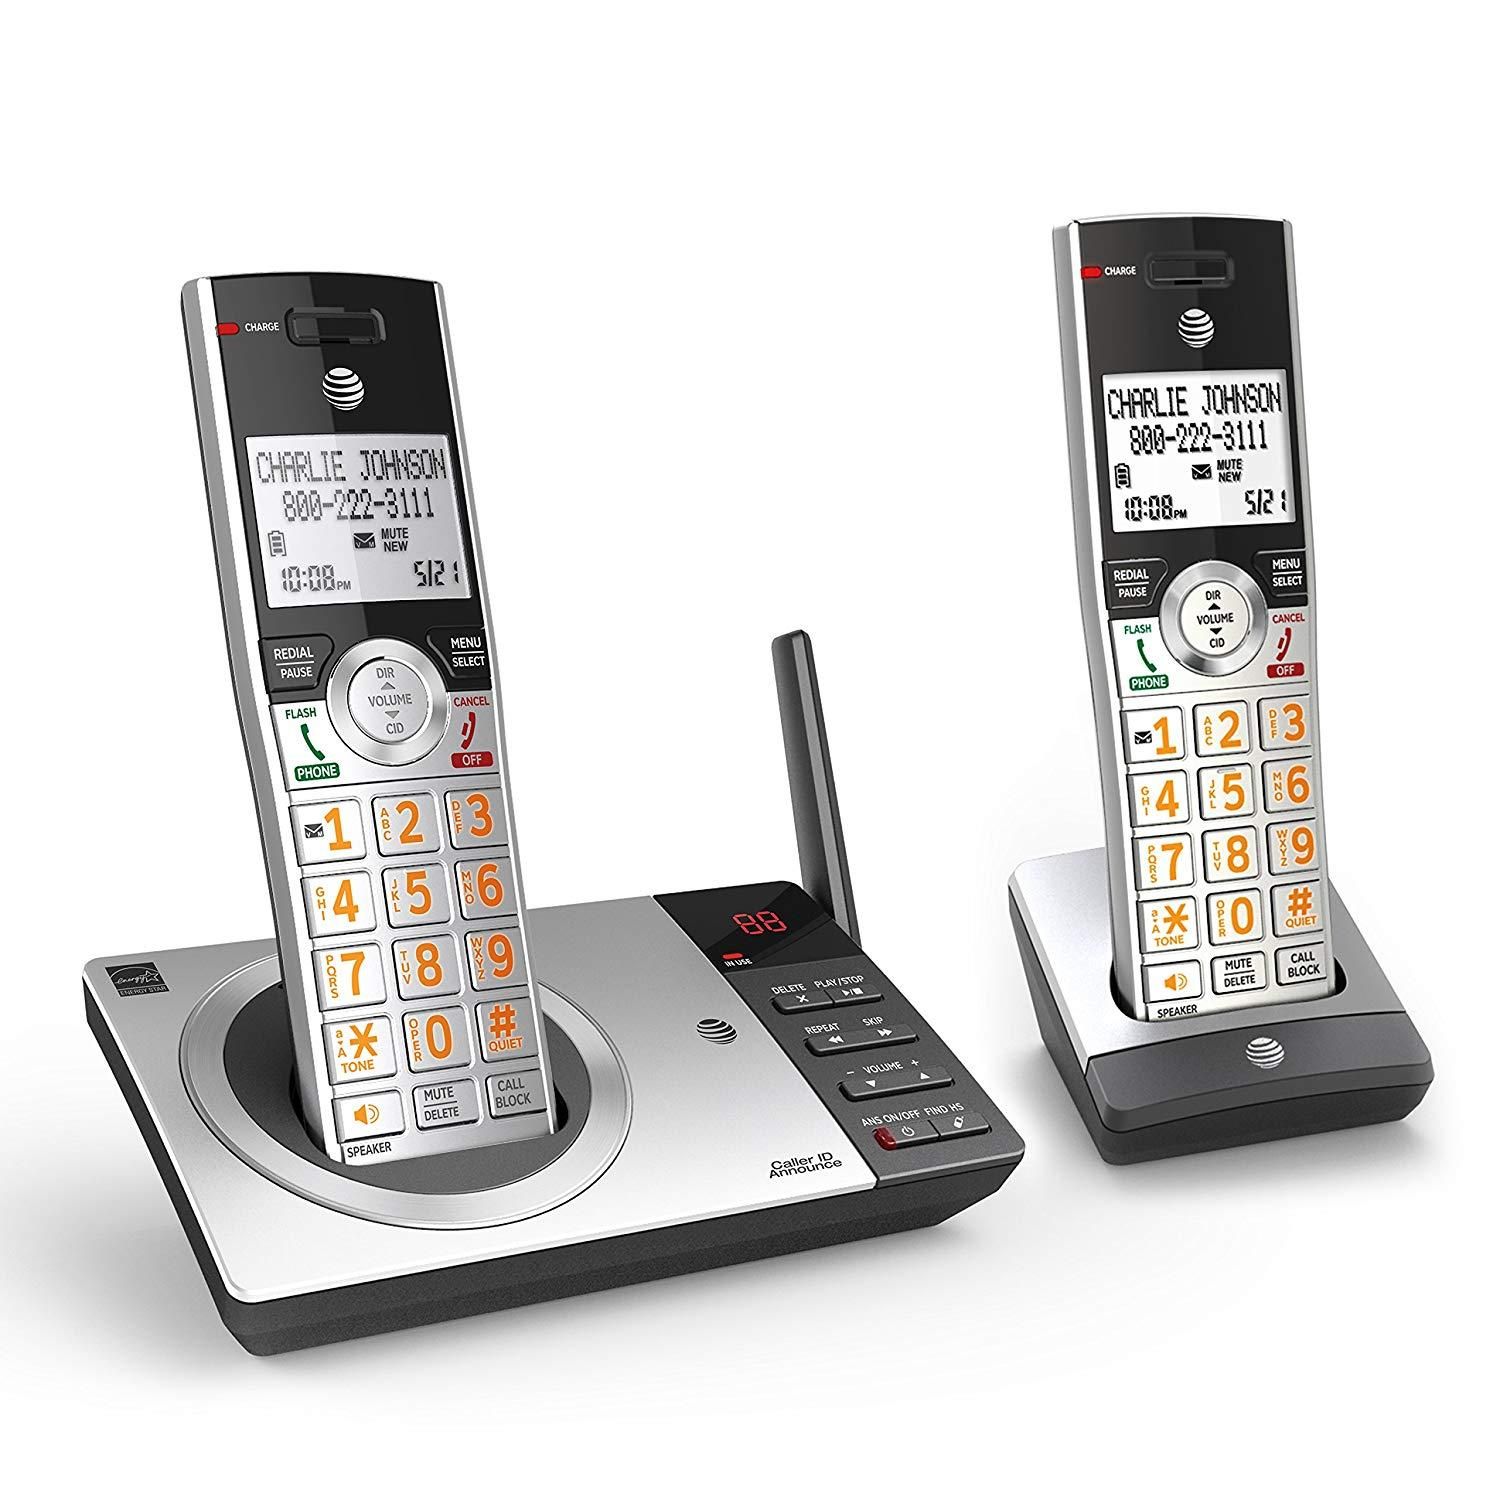 ATT CL82207 Dect 6 Cordless Phone with Answering System